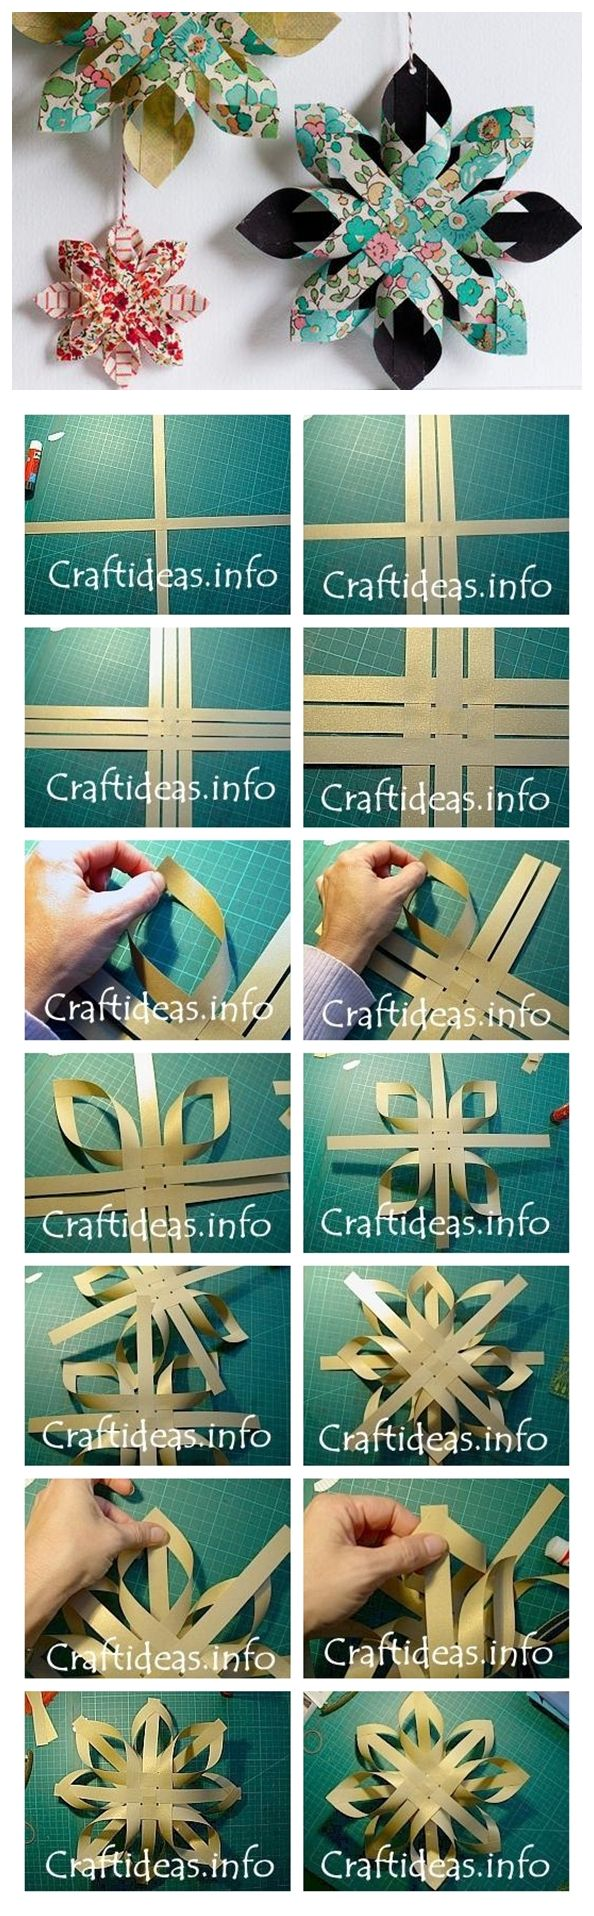 25 best ideas about paper stars on pinterest origami for How to make a star with paper step by step